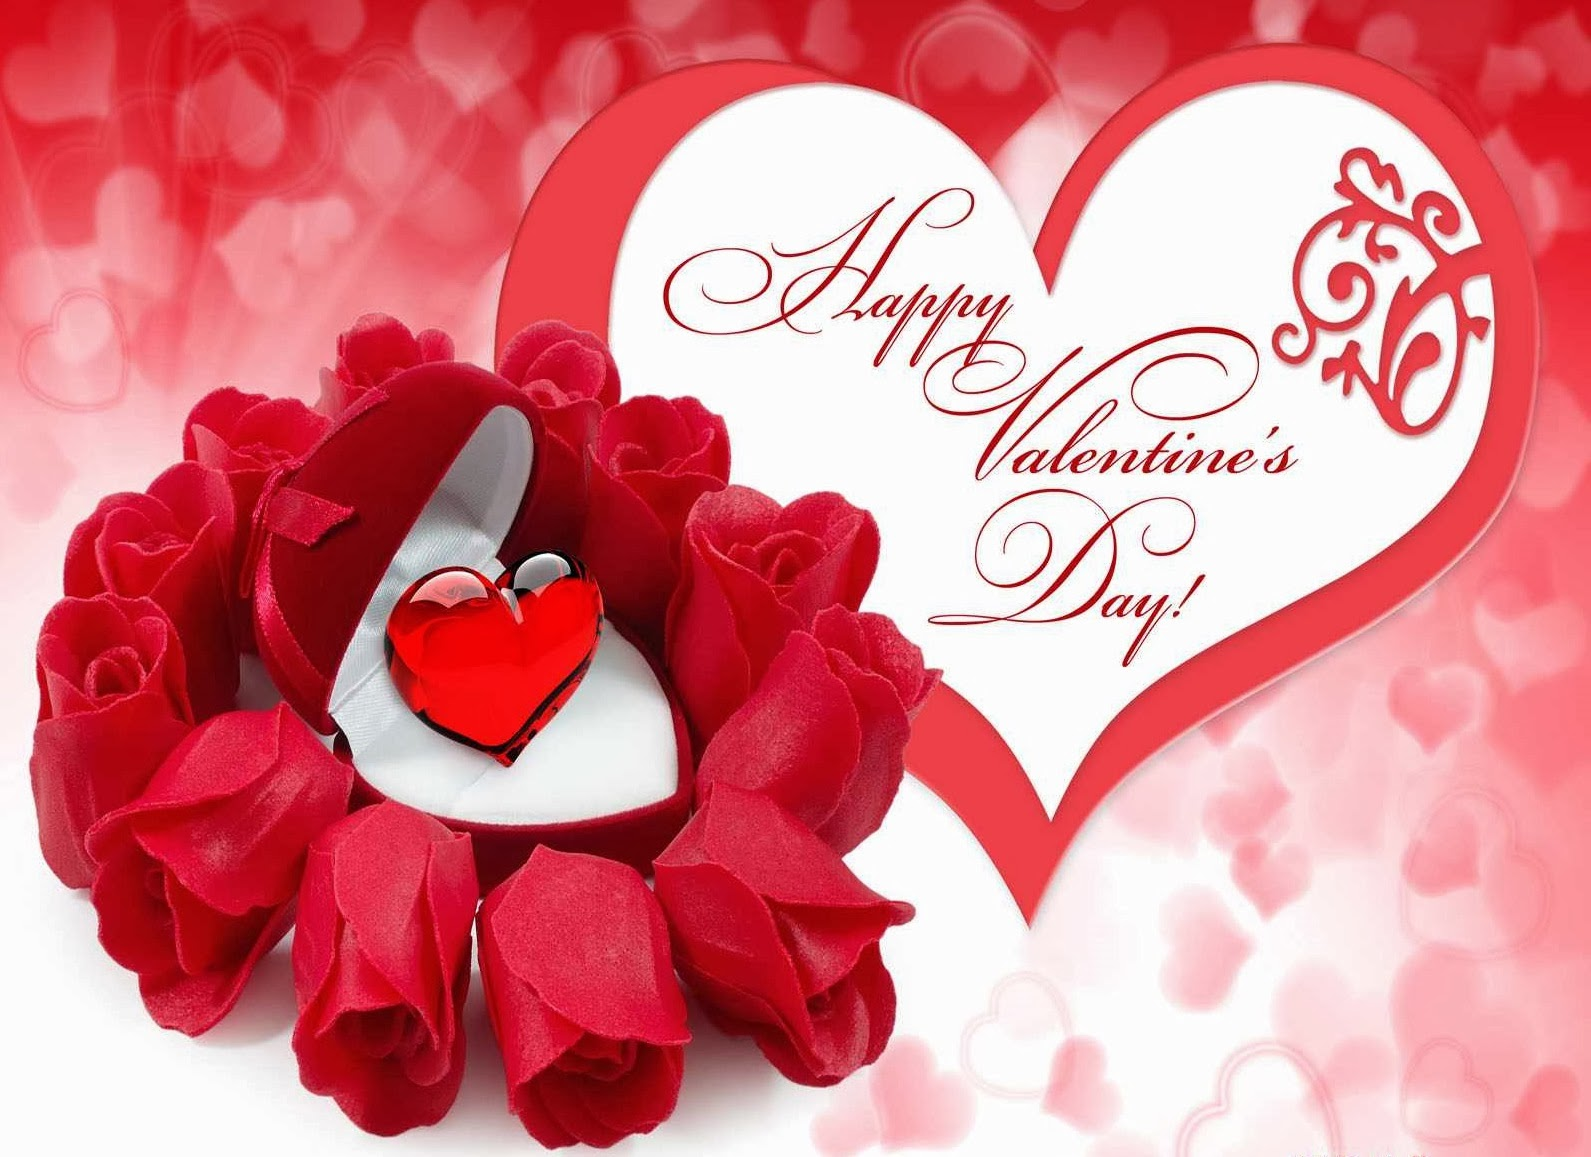 Happy Valentines Day 2015 Sms Quotes Wishes Happy